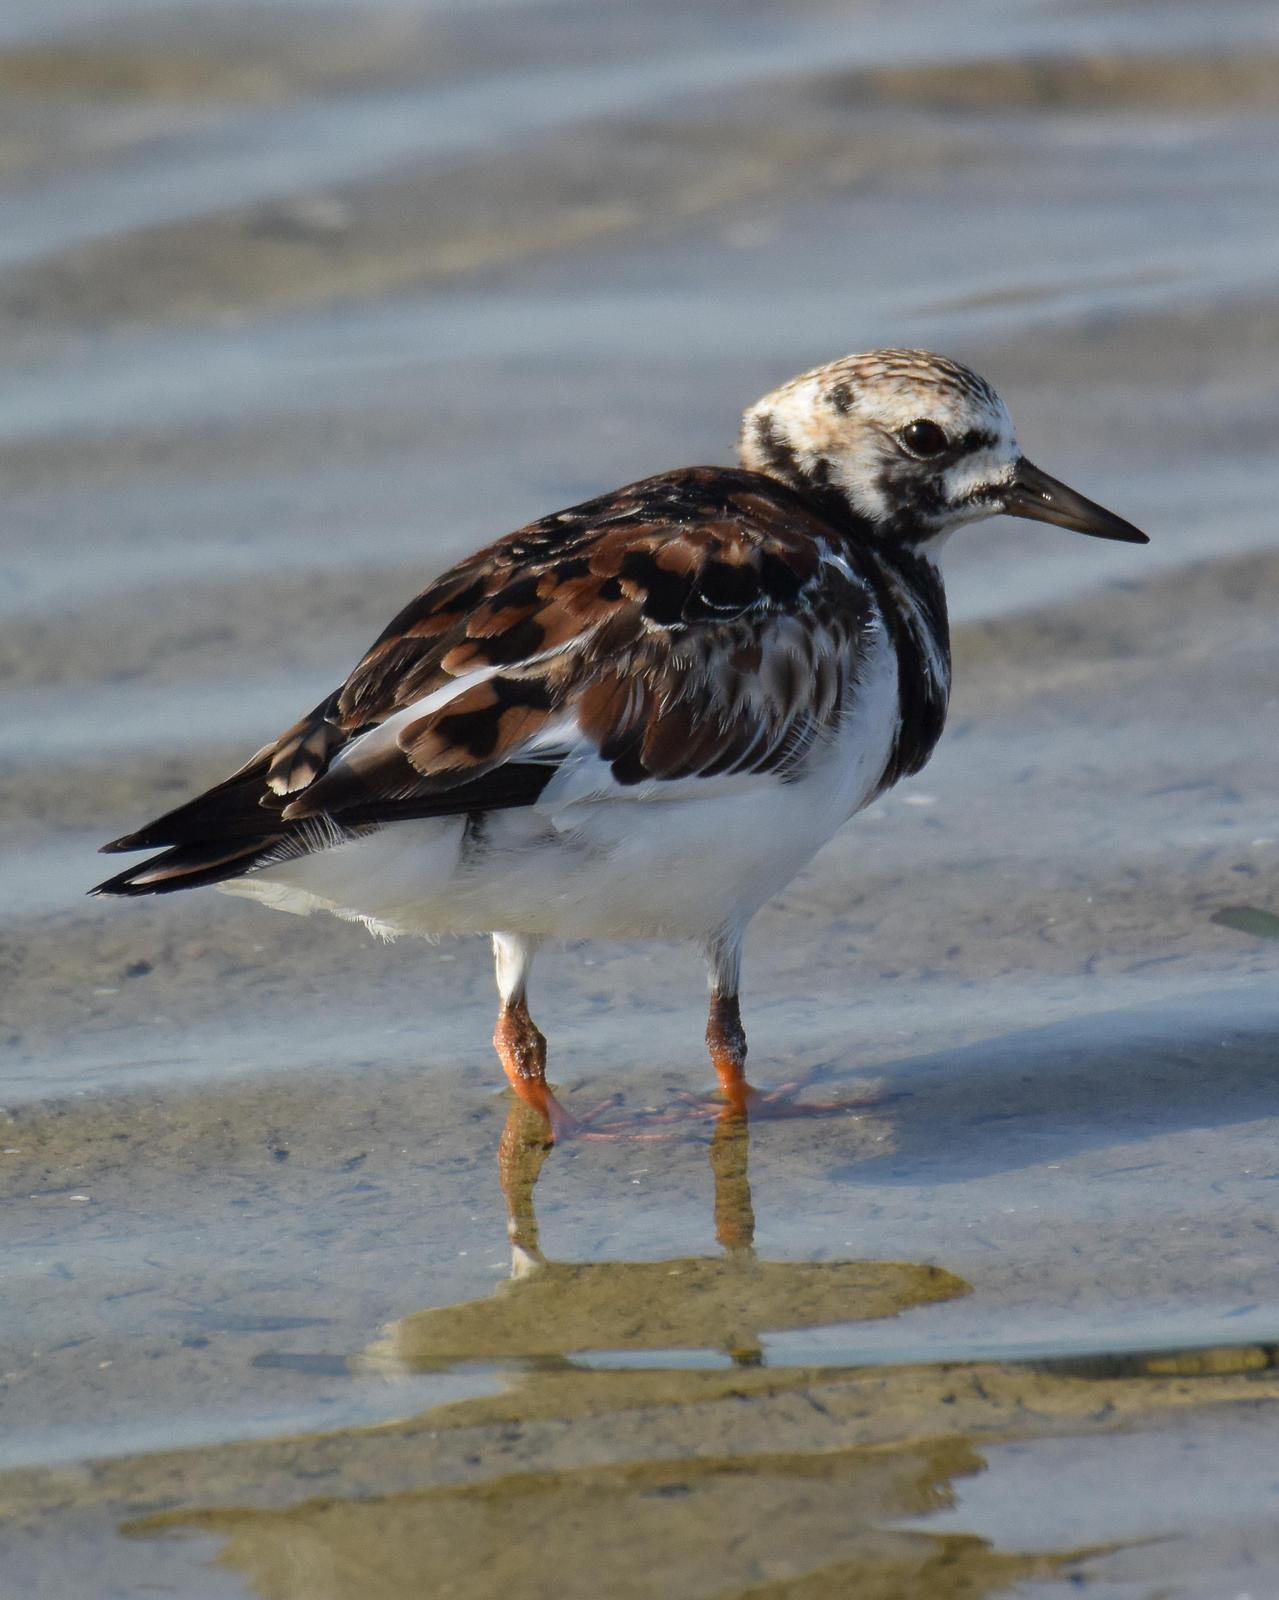 Ruddy Turnstone Photo by Emily Percival